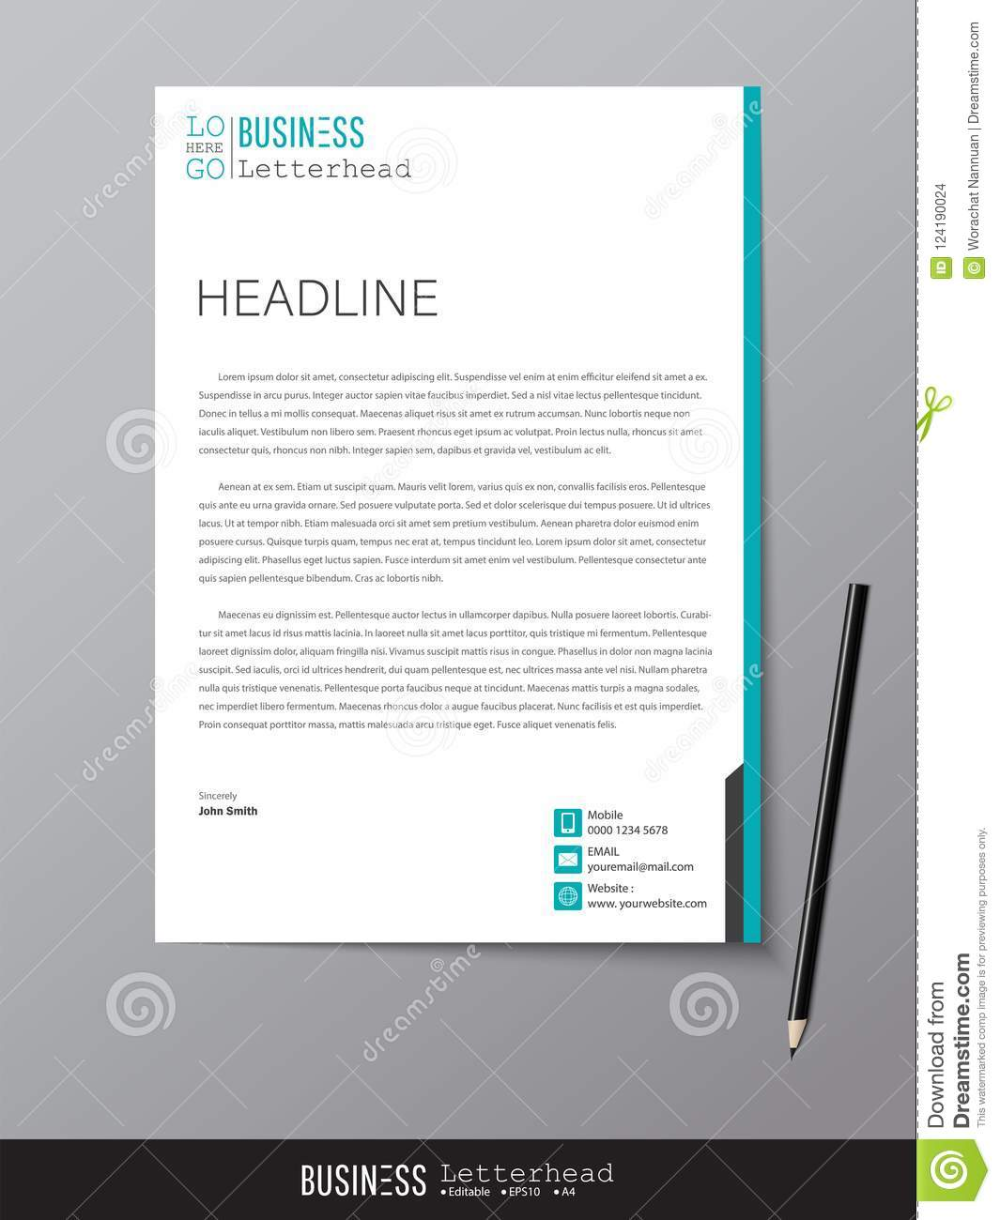 letterhead design template and mockup minimalist style best objective for resume civil engineer cv filetype docx career in simple words